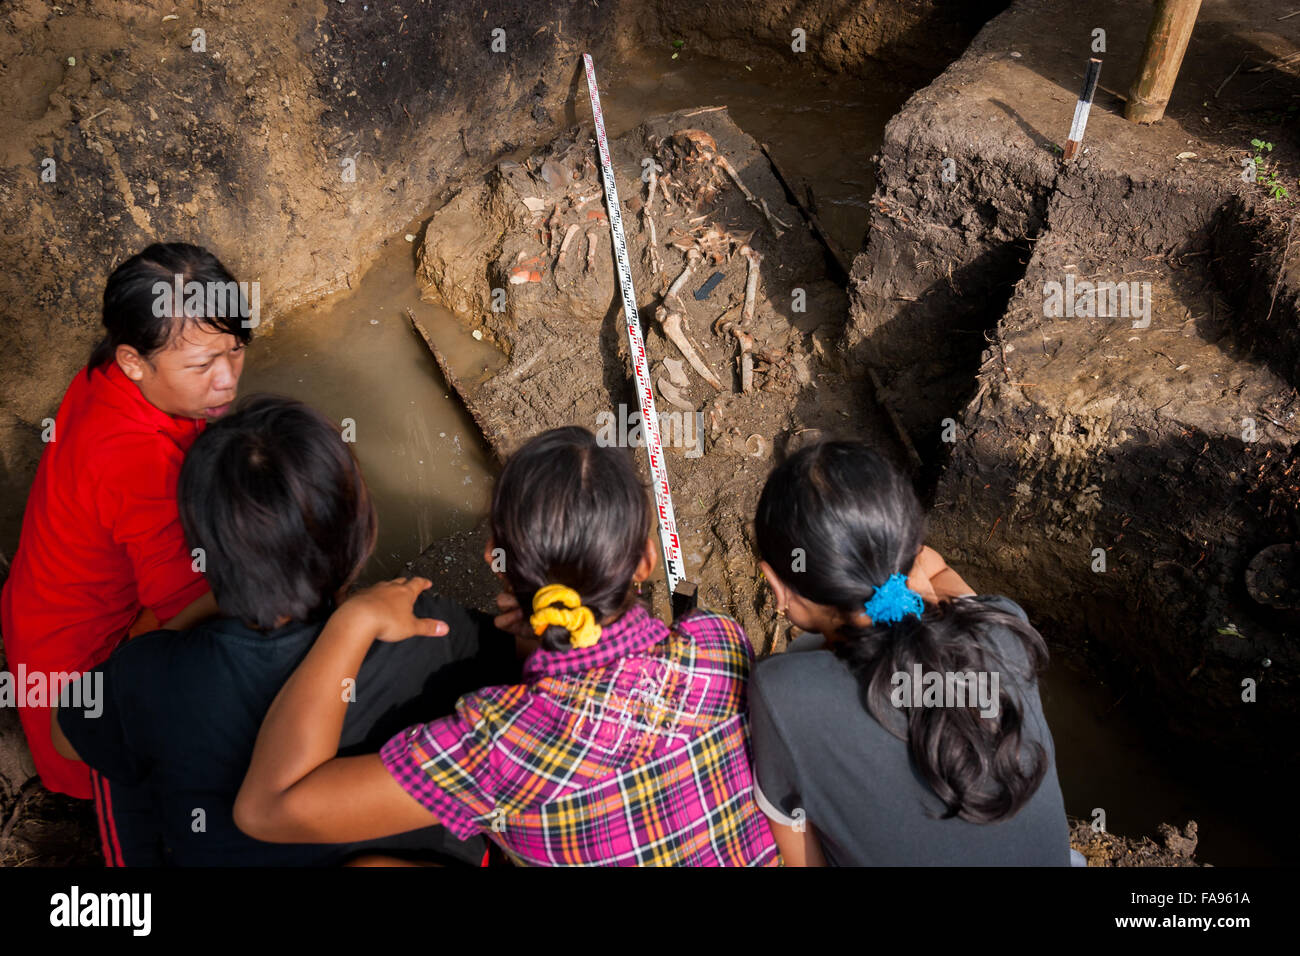 Local people discuss while visiting an archaeological excavation site of prehistoric human skeletons in Cikuntul, - Stock Image